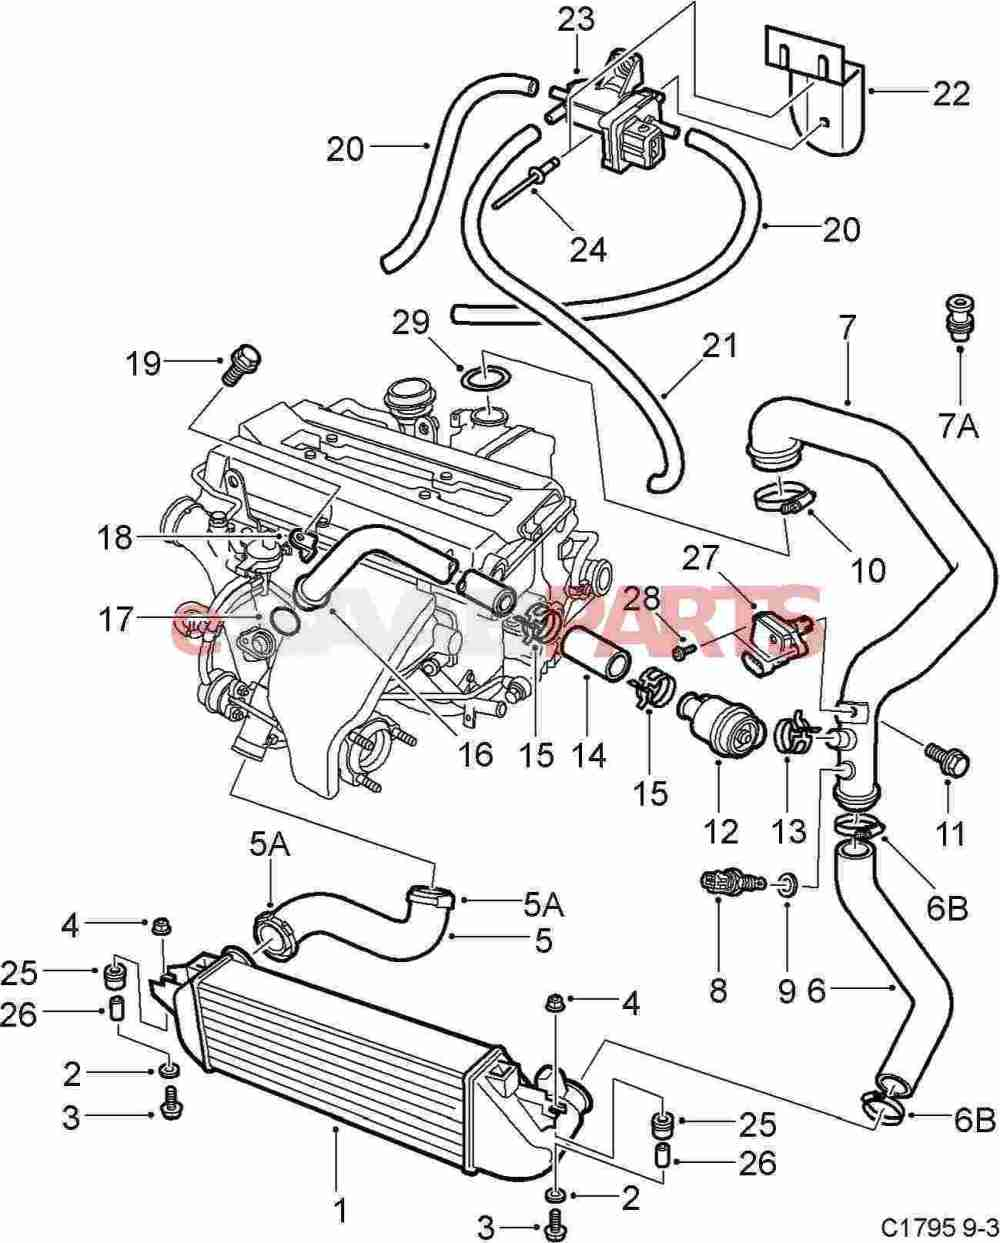 medium resolution of 1999 saab engine diagram wiring diagram todays rh 14 15 9 1813weddingbarn com saab 9000 cs turbo saab 2 3 turbocharged engines